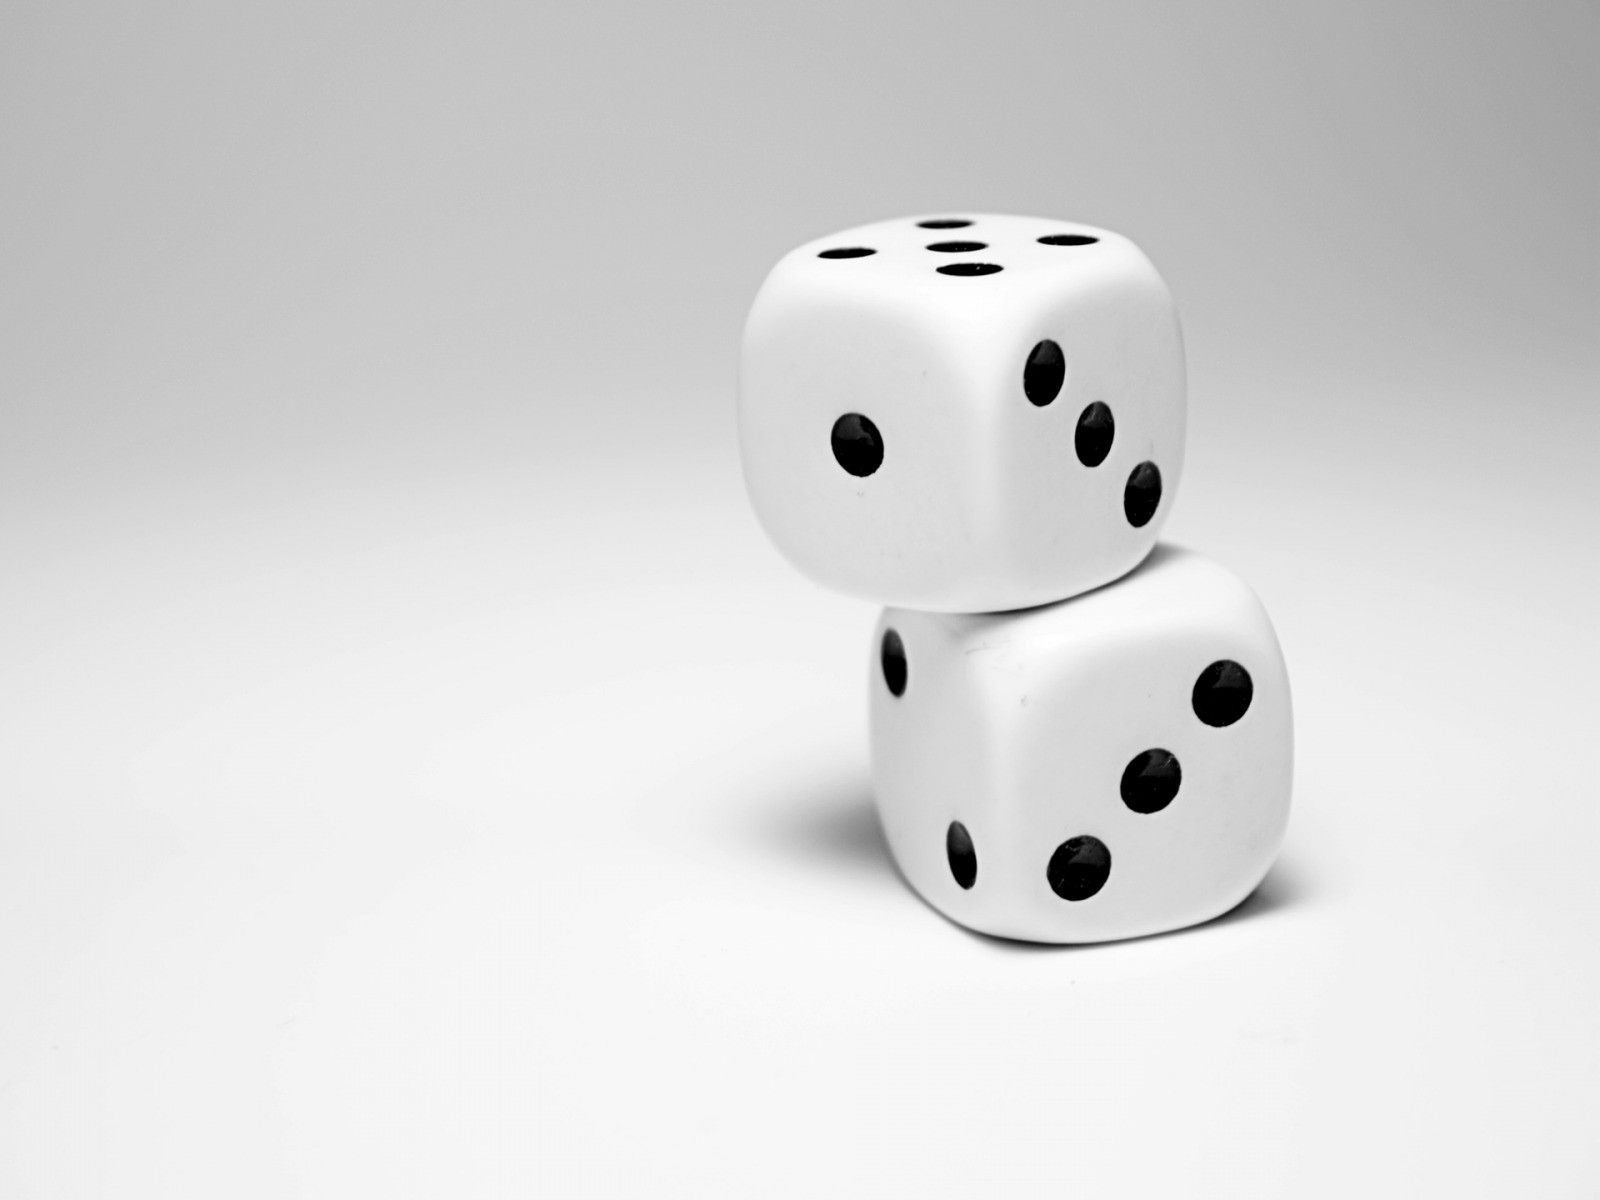 1600x1200 Dice Wallpaper and Background Image | 1600x1200 | ID:459548 ...